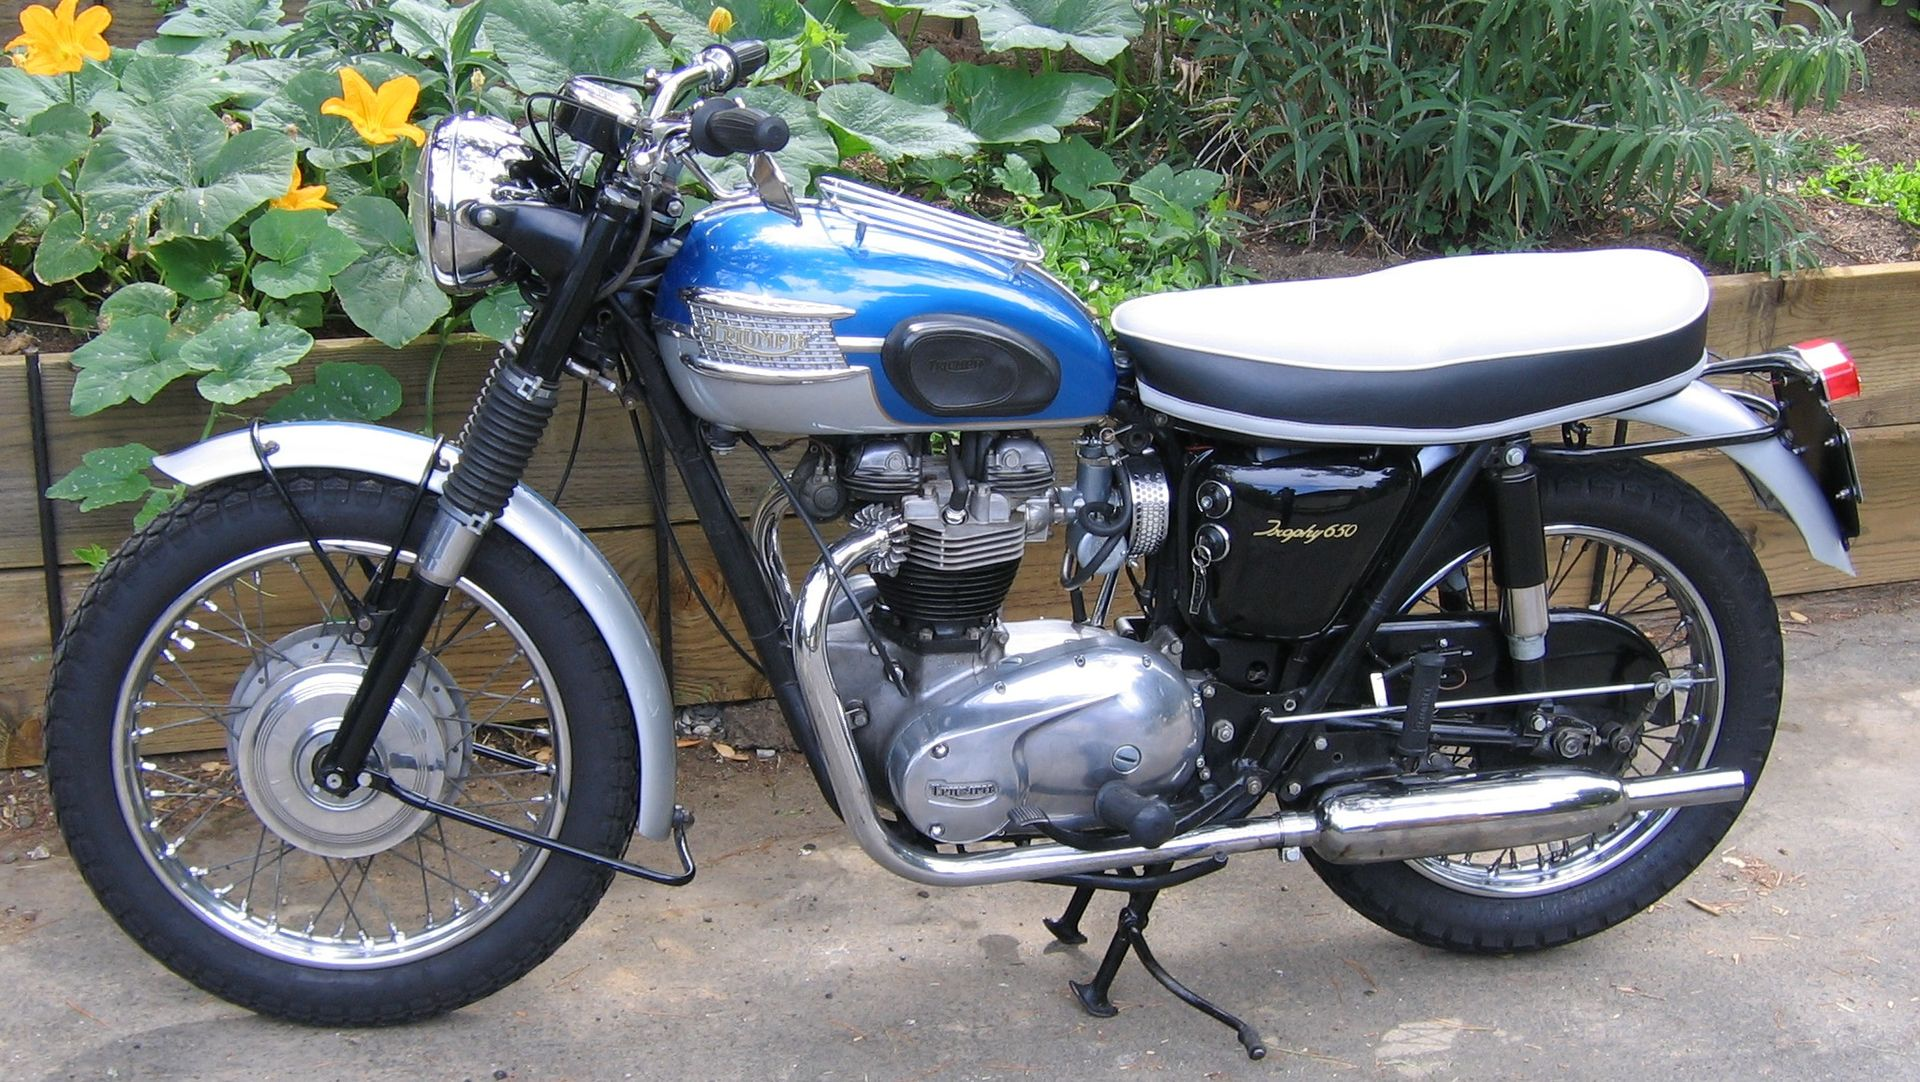 Triumph Wiring Diagram   Opt X O C S X besides Terry Macdonald Of Triumph Bonneville Wiring Diagram also S le additionally T Wiring Diagram   Opt X O C S X together with Mc Fb Sc Bolts. on 1972 triumph bonneville wiring diagram